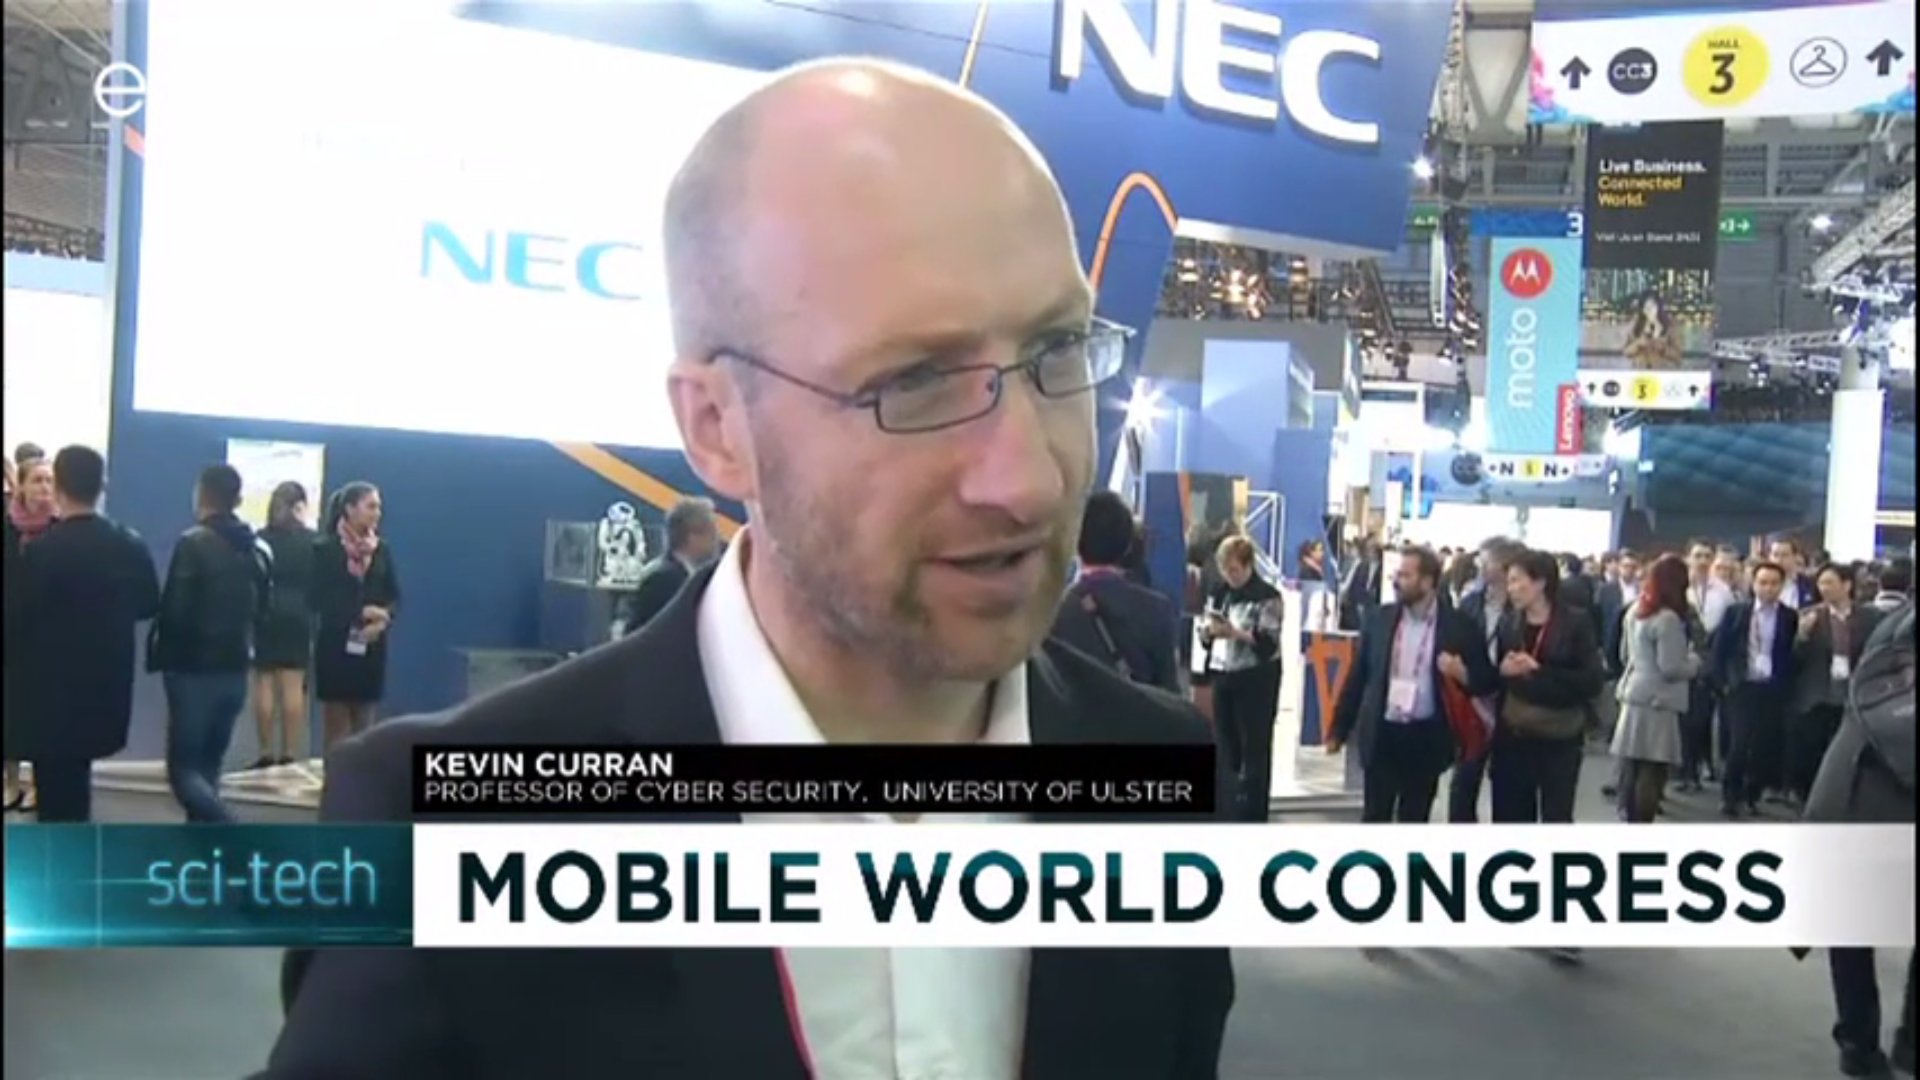 Professor Kevin Curran, Ulster University at Mobile World Congress 2017 speaking to Euronews.